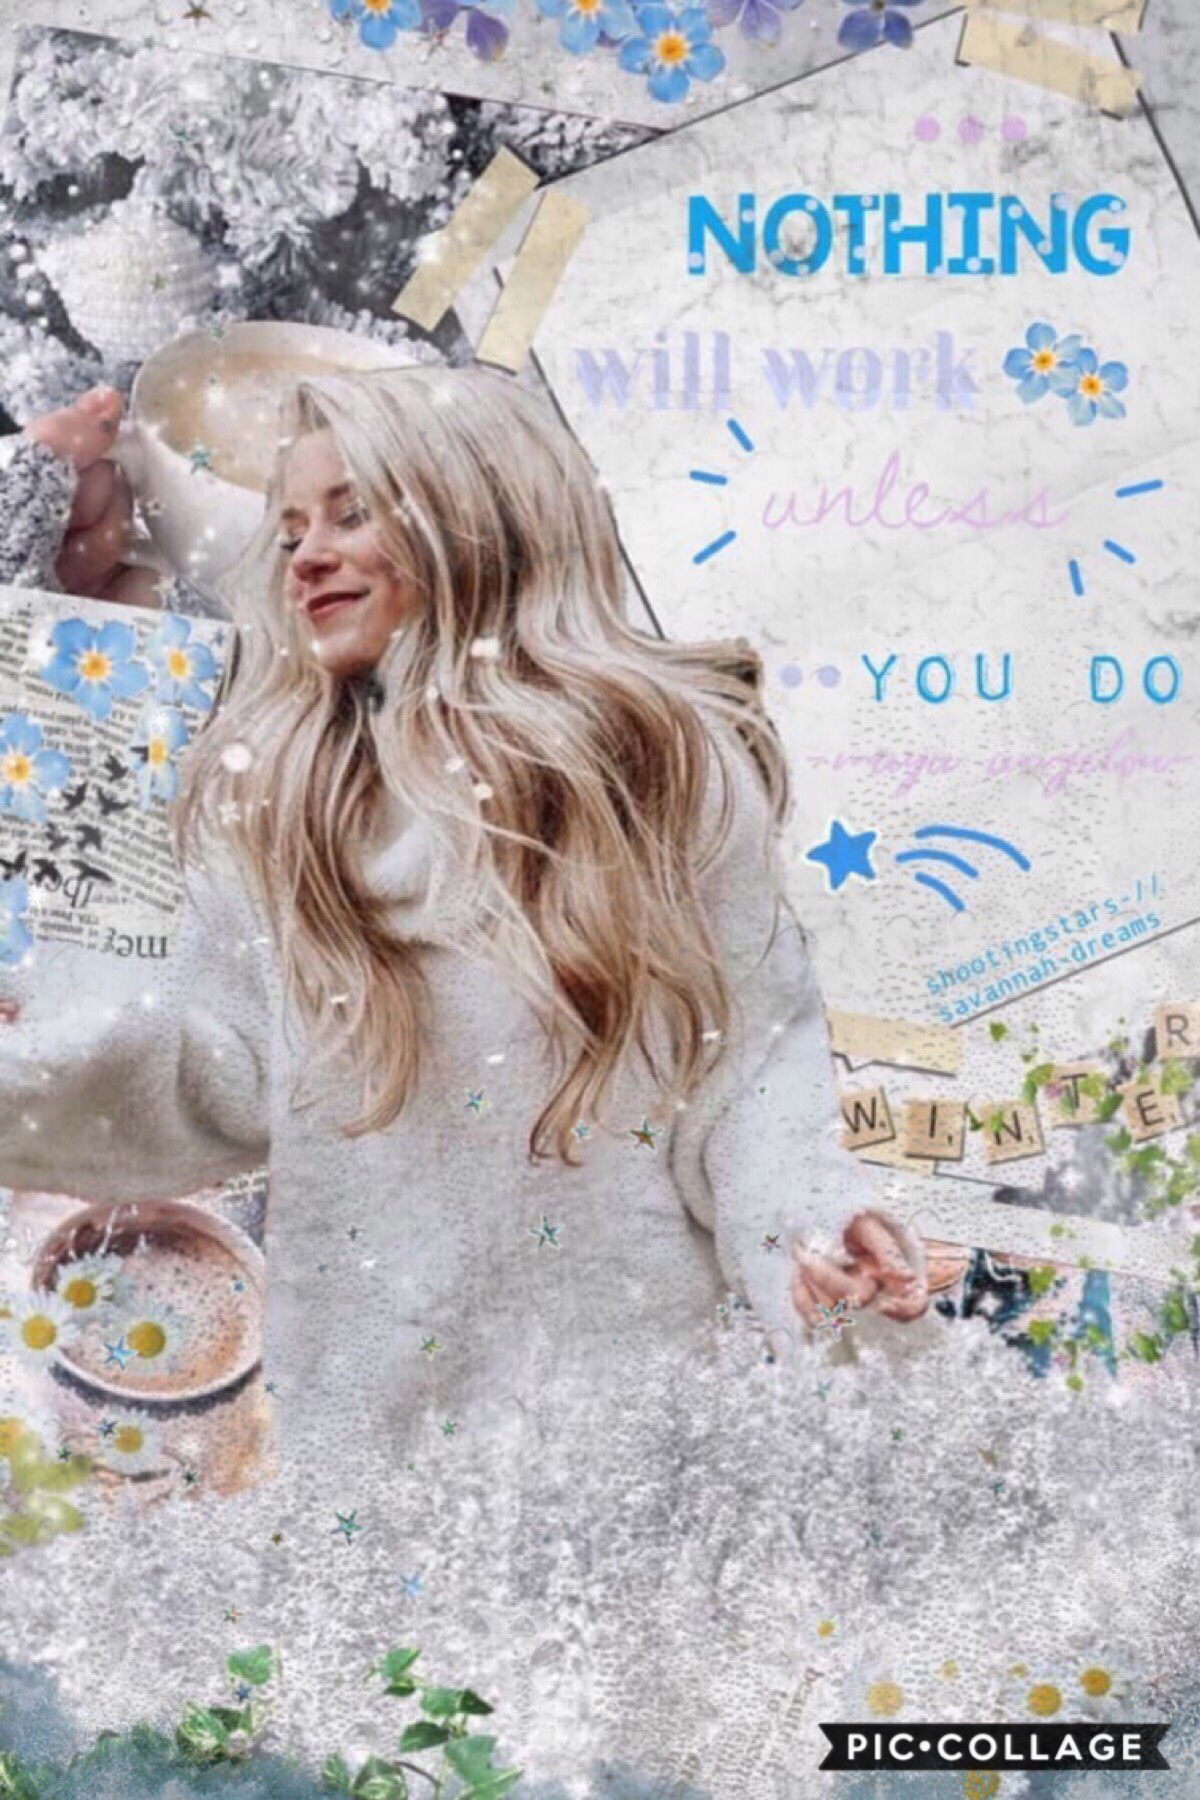 ❄️collab with.. tap❄️ savannah-dreams!! Omg savvy is so talented y'all have to follow her!!💓✨i did bg and she did text!! The bg looks so terrible lol, what's up everyone? Omg school ends in two weeks and I'm so happy!!✨🥳hehe anyway hope you guys have a gr